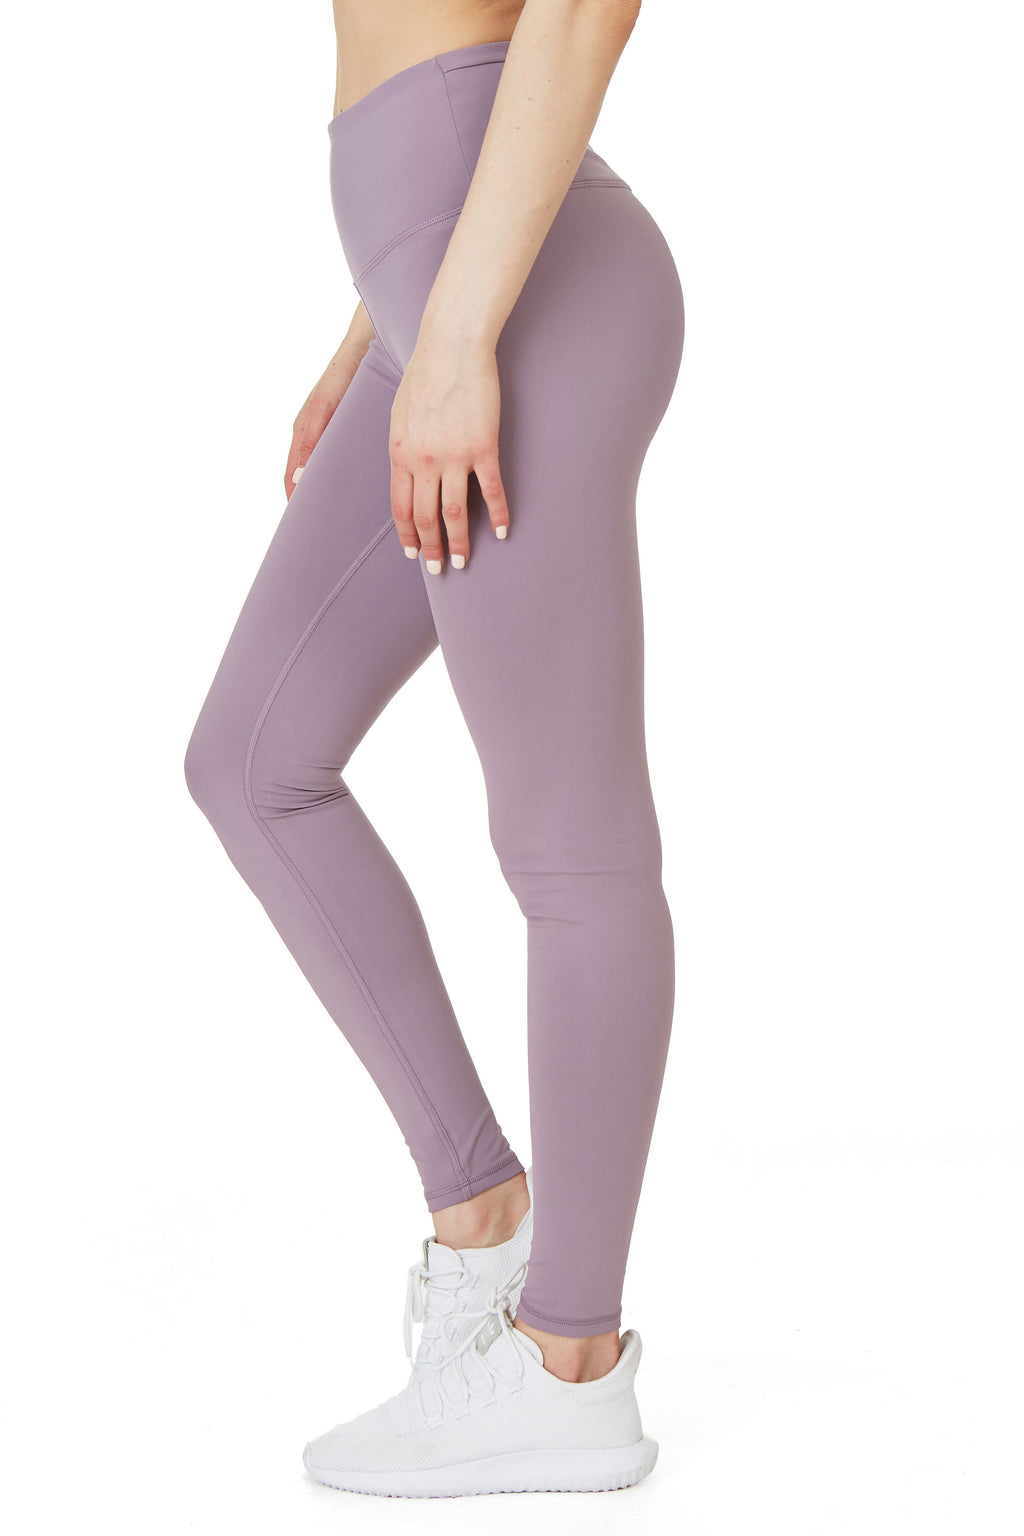 748a22ccb9f6a3 Iconic Sportswear and Activewear for Women|Leggings-GottexStudio.com